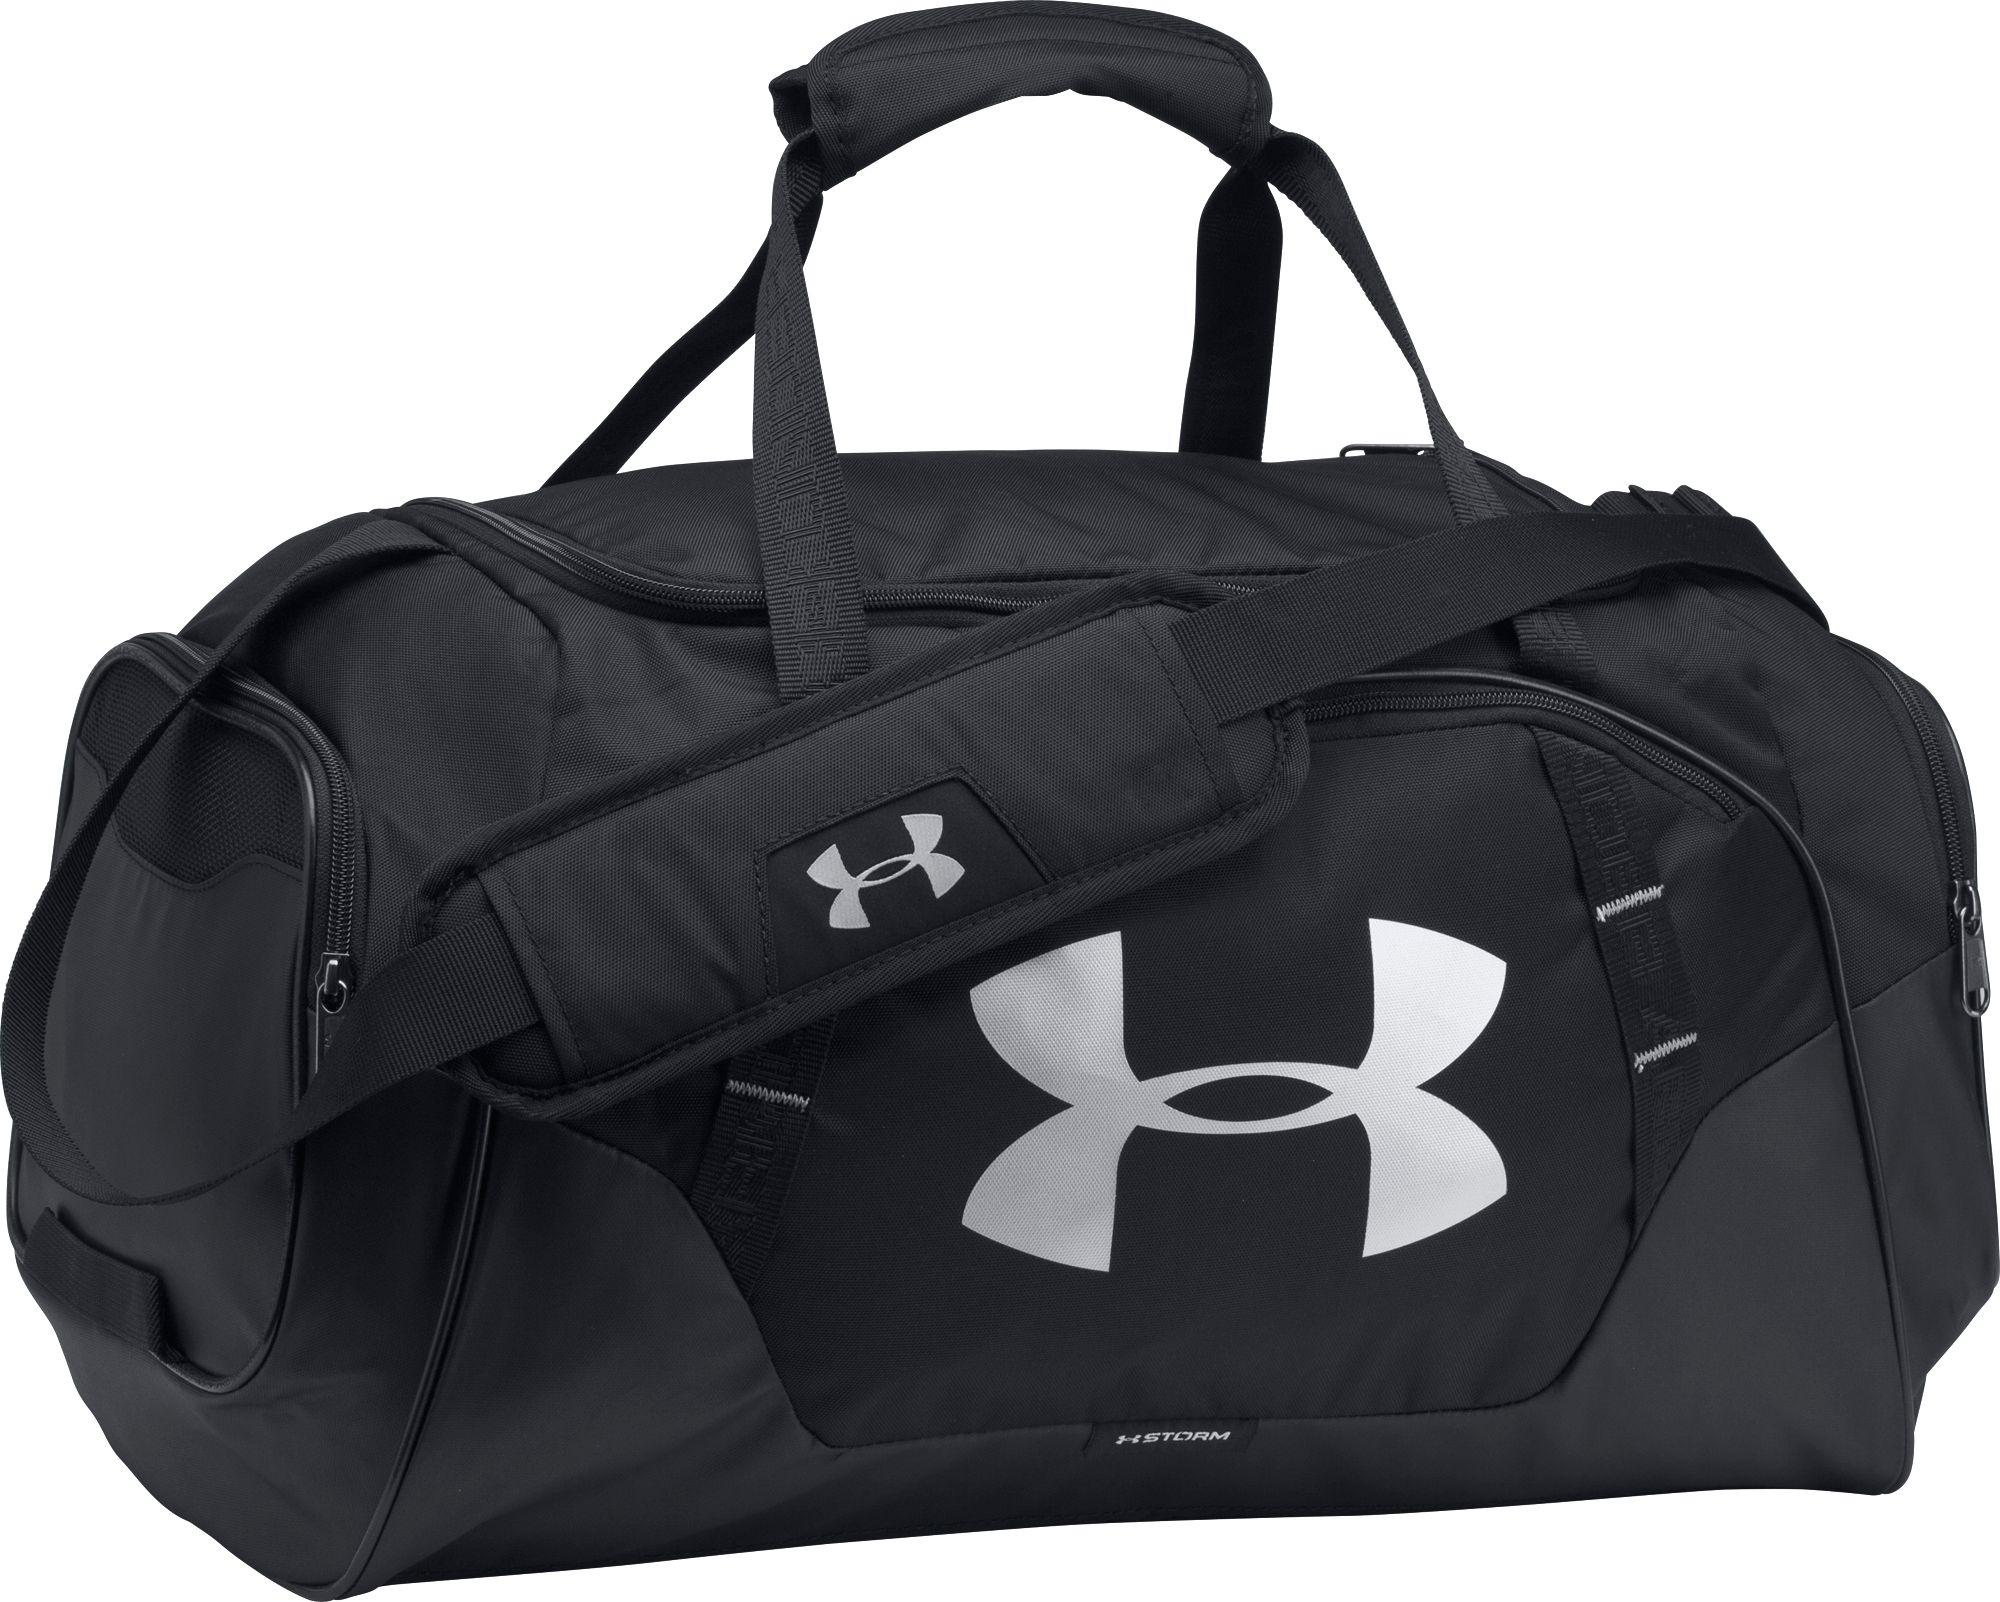 Lyst - Under Armour Undeniable 3.0 Small Duffle Bag in Black for Men b9049ce07376d